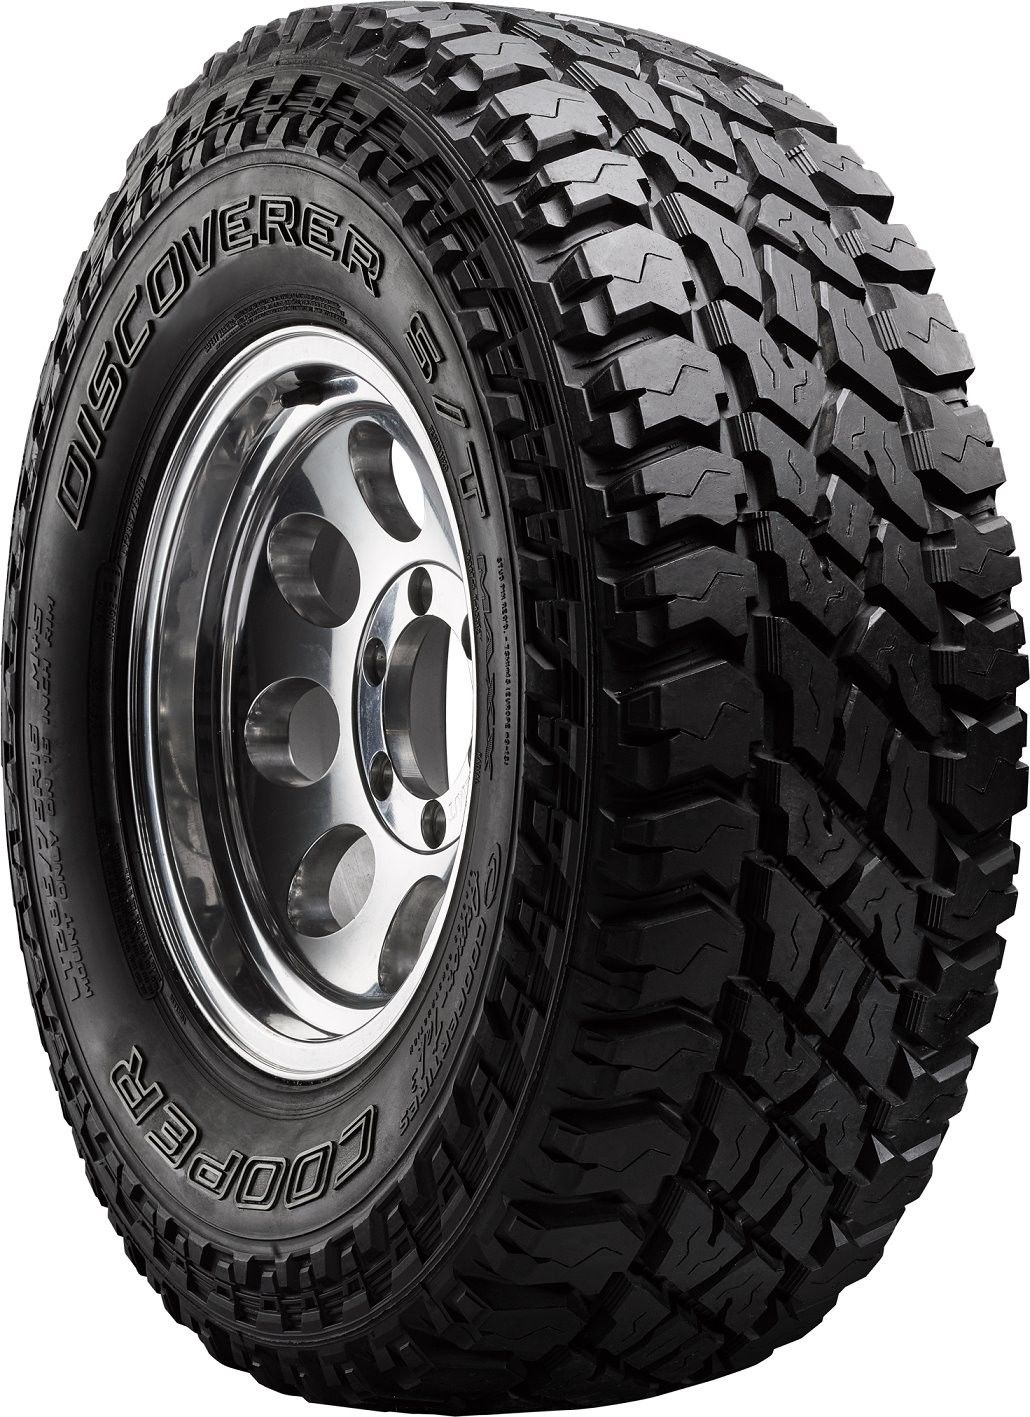 Cooper Discoverer S/T MAXX 235/85R16 120/116 Q BSW